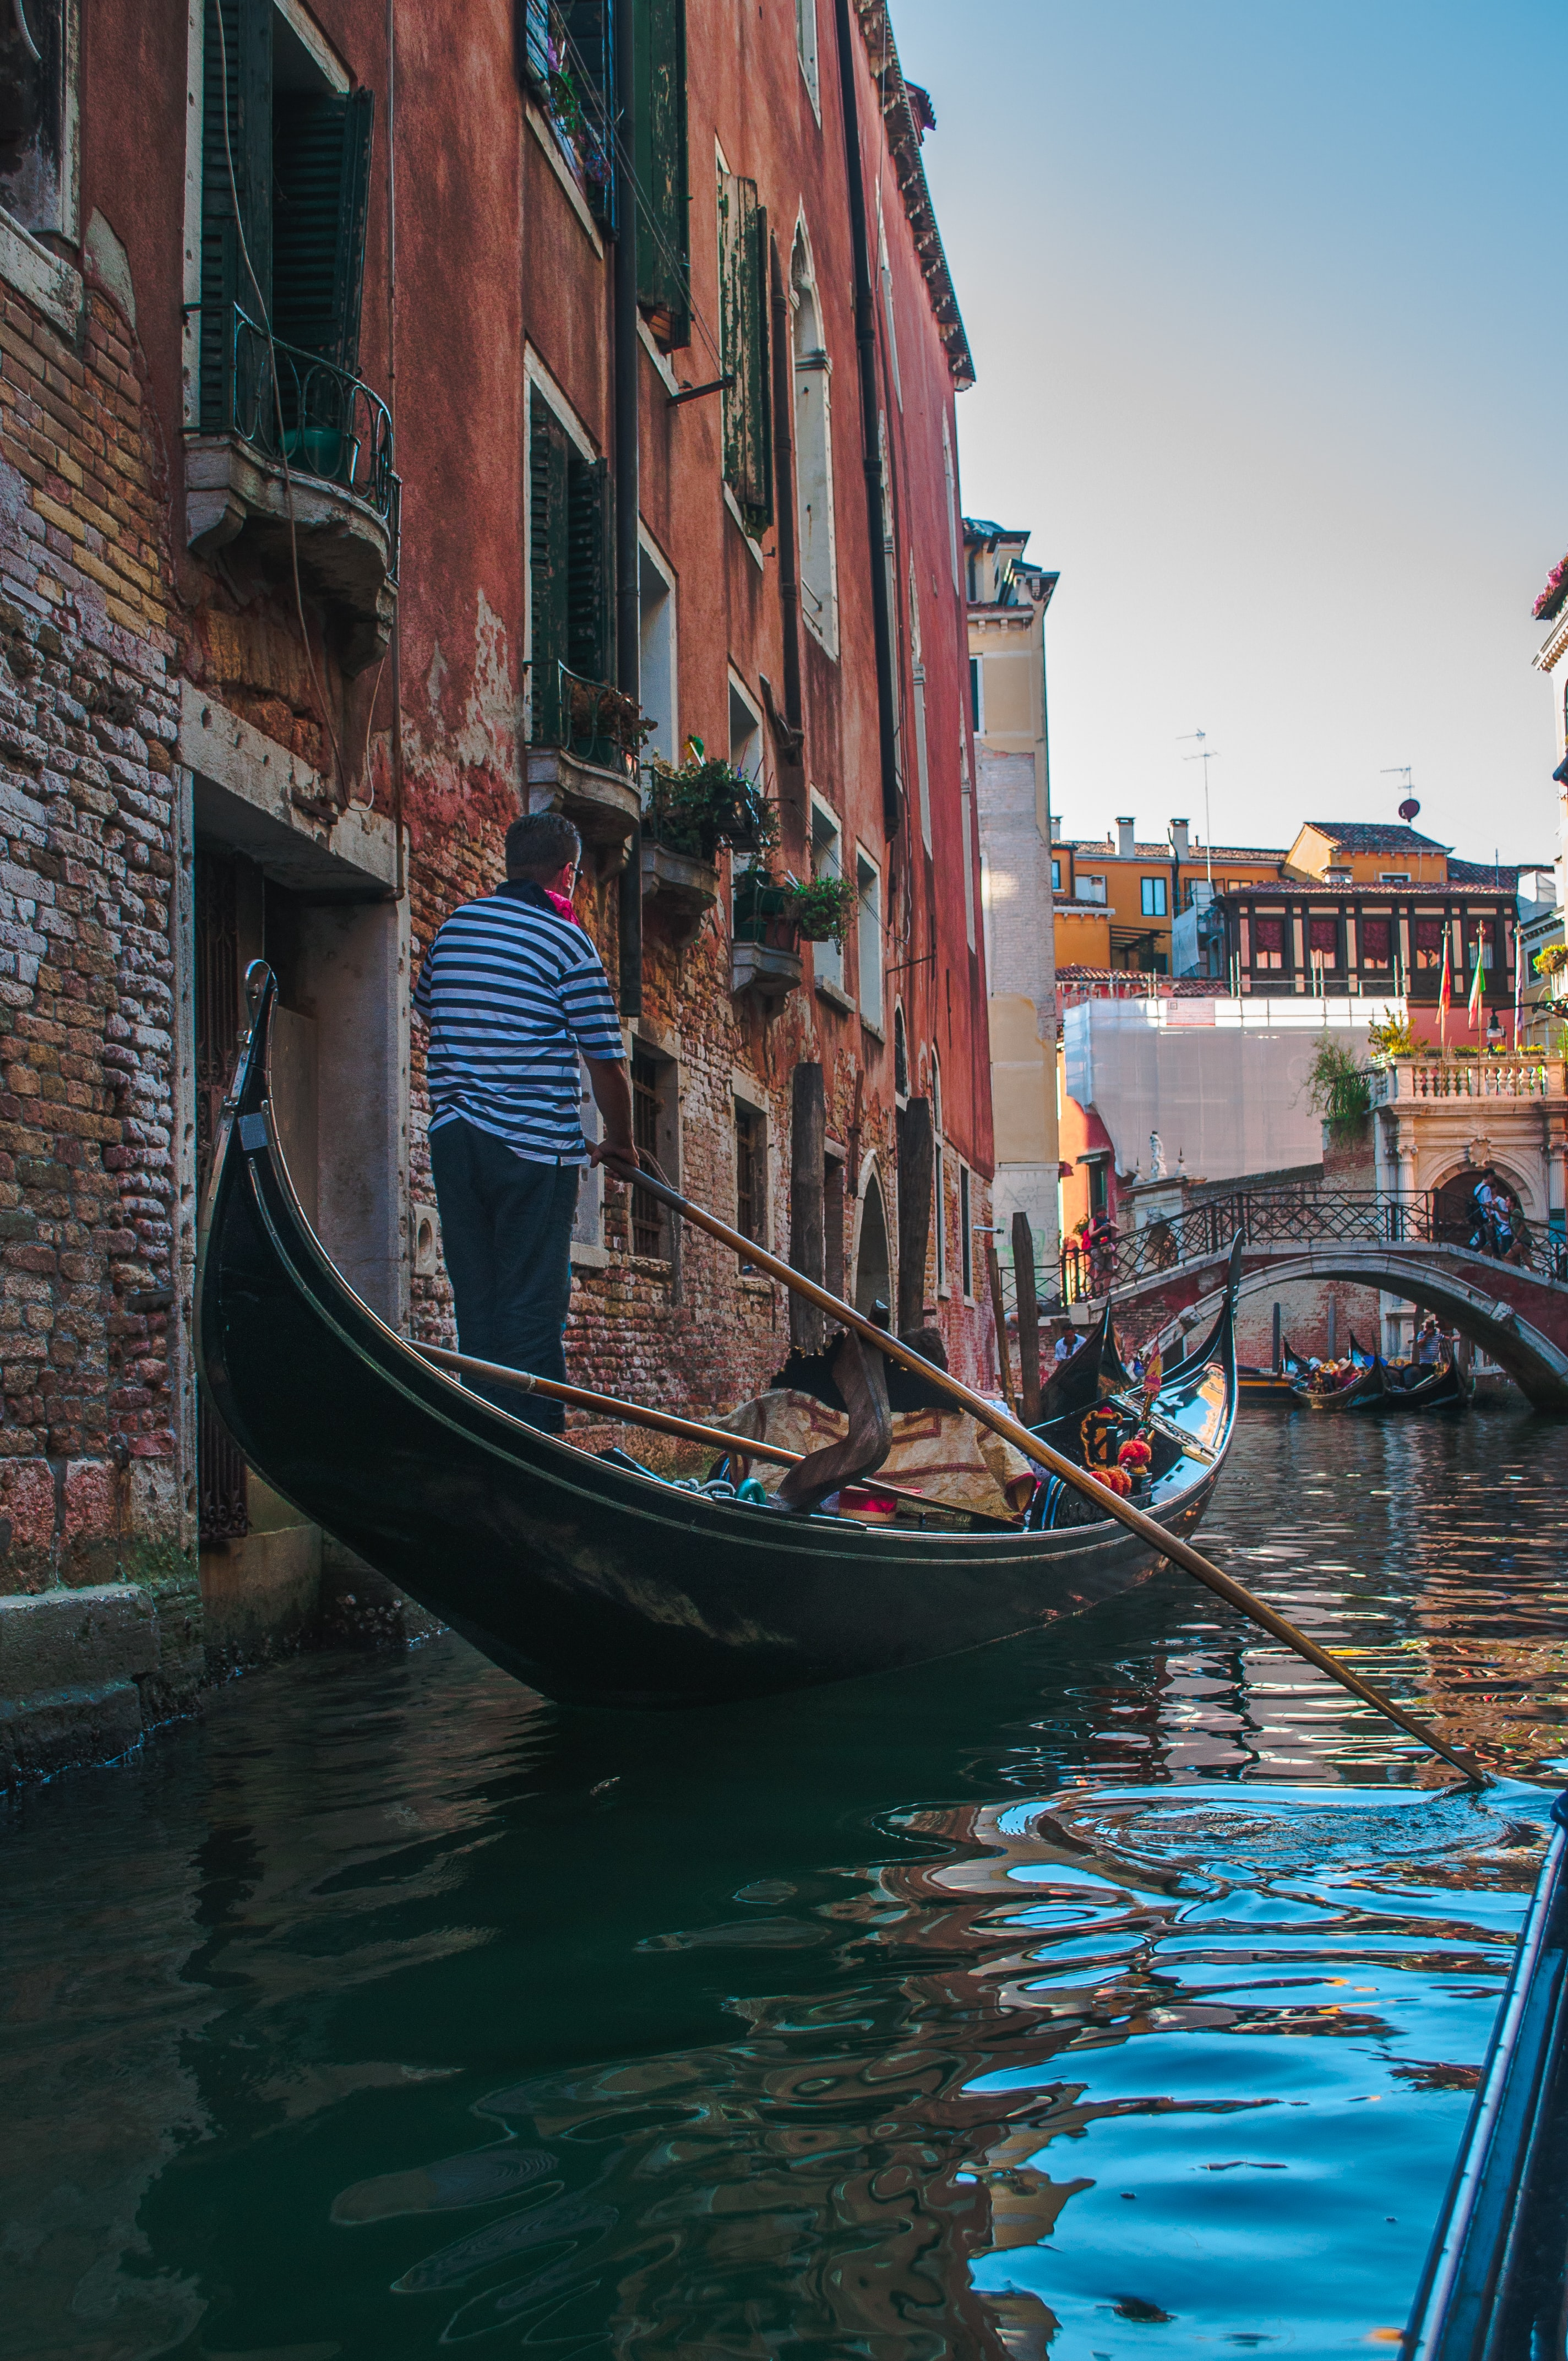 man riding boat at Venice Canal